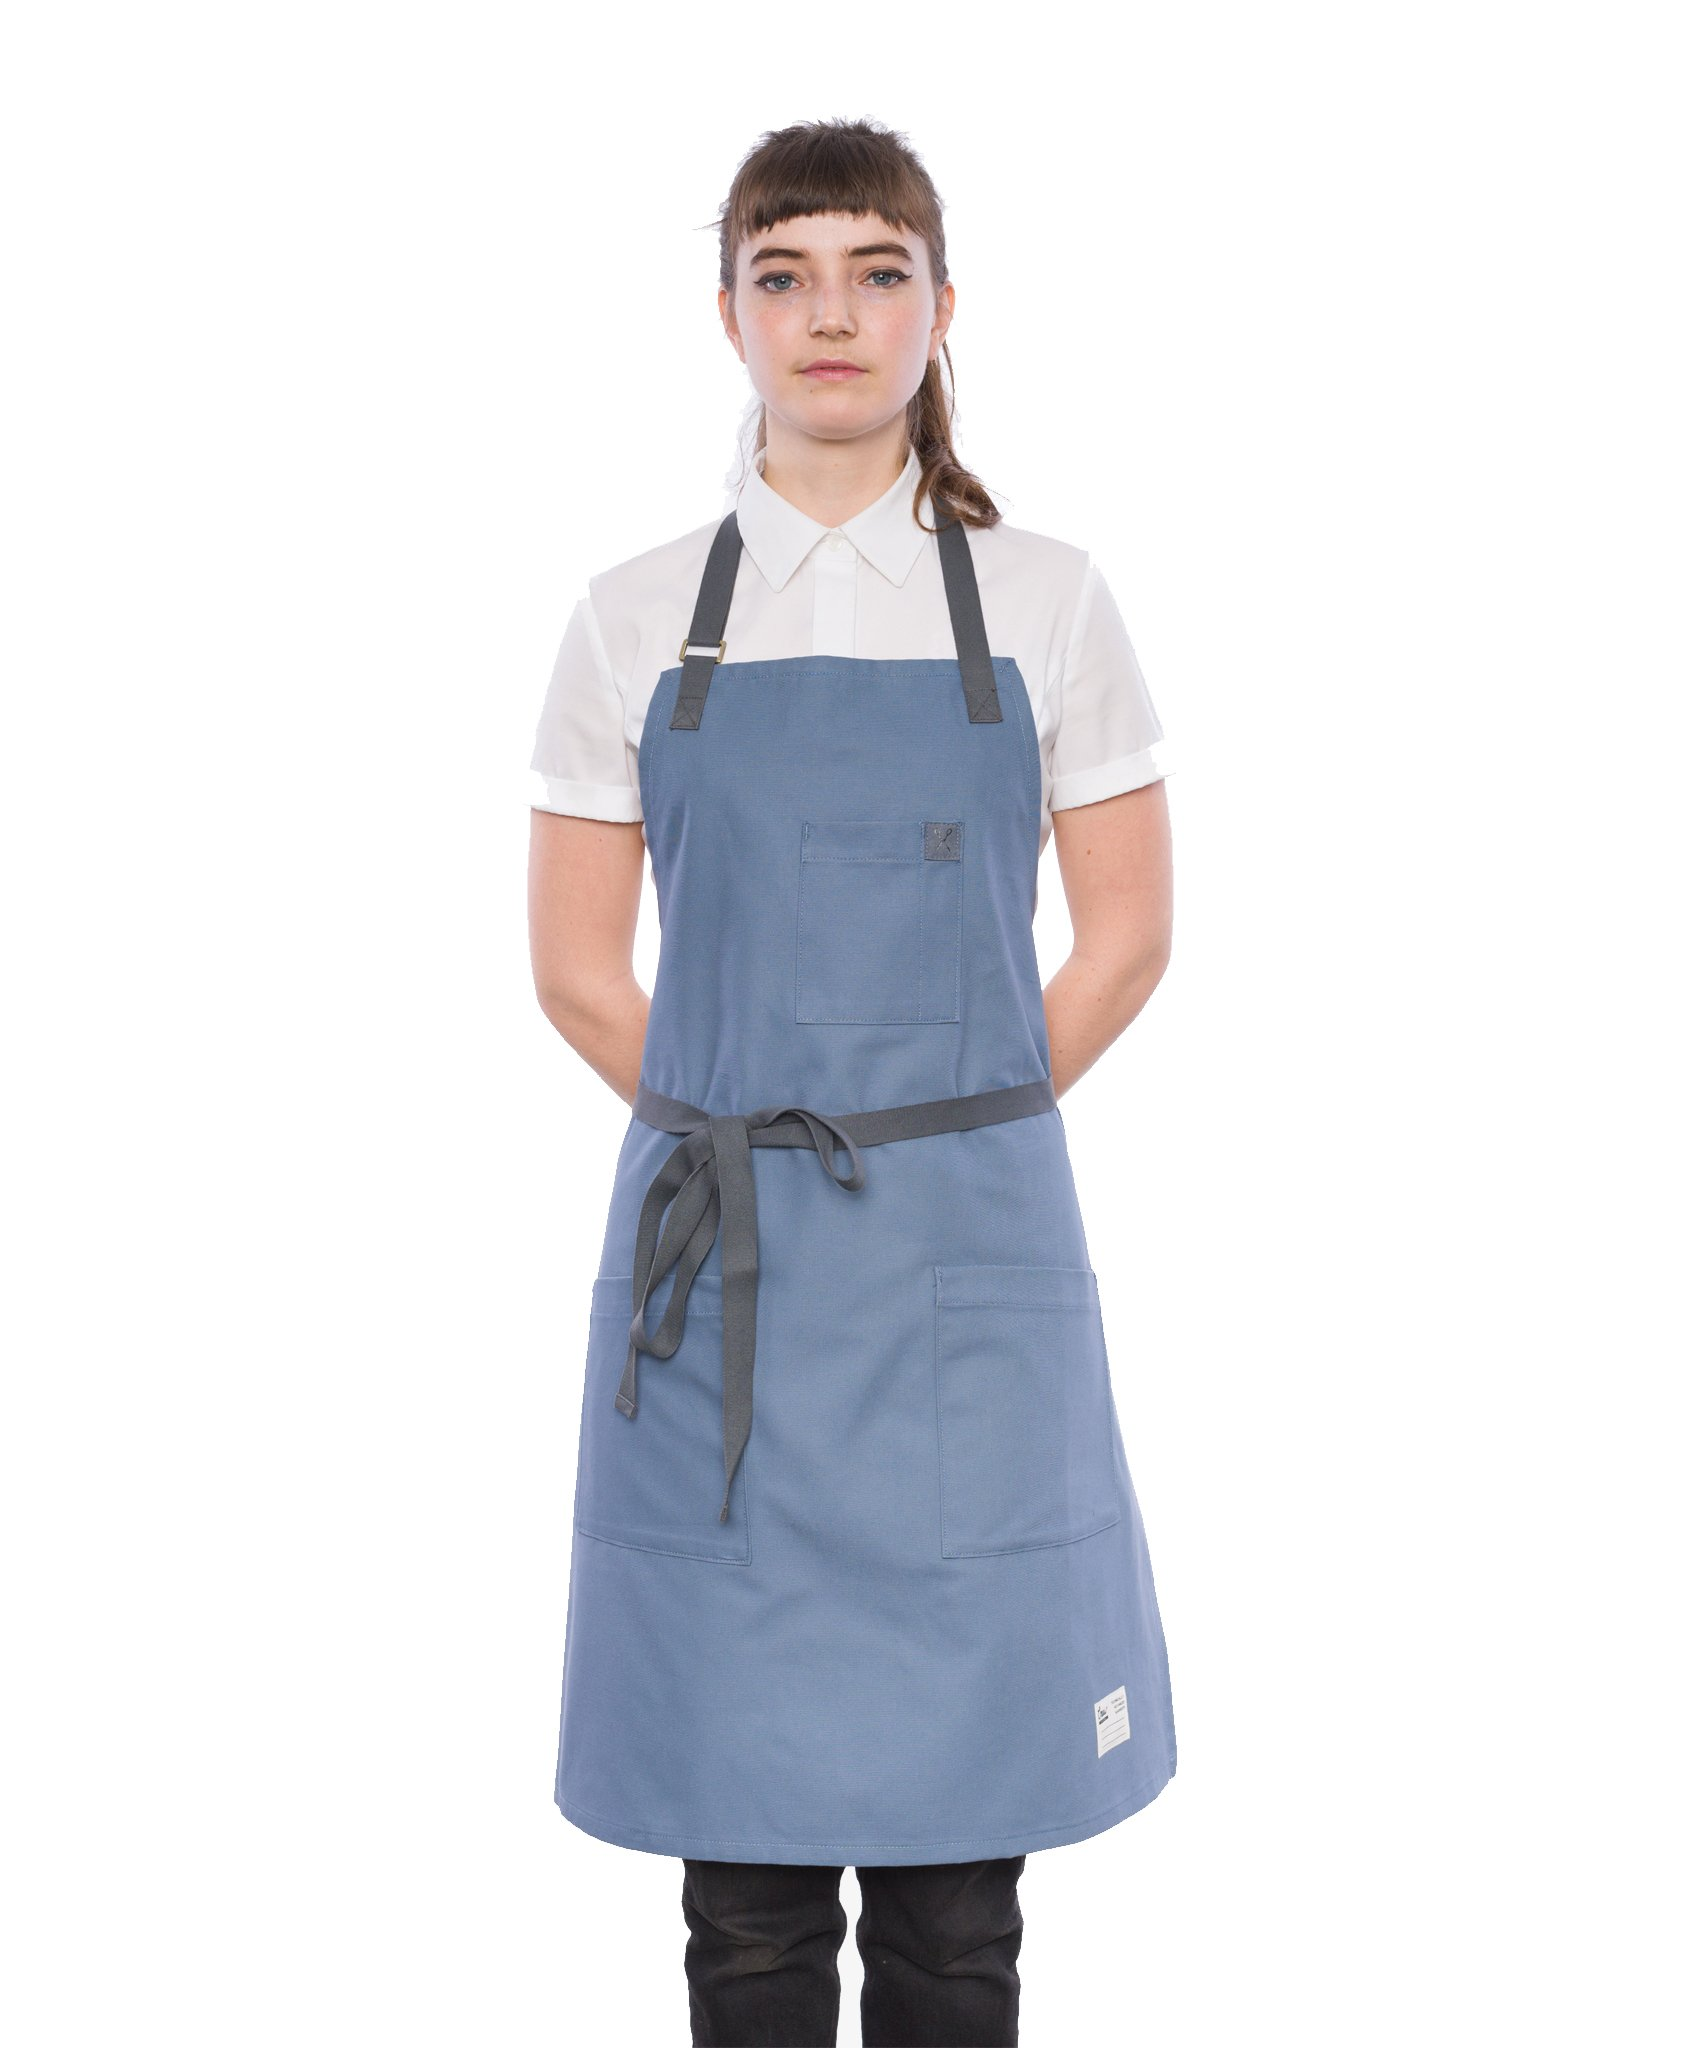 Crew Apparel Christian Slate Brushed Canvas Standard Apron Made in USA by Crew Apparel